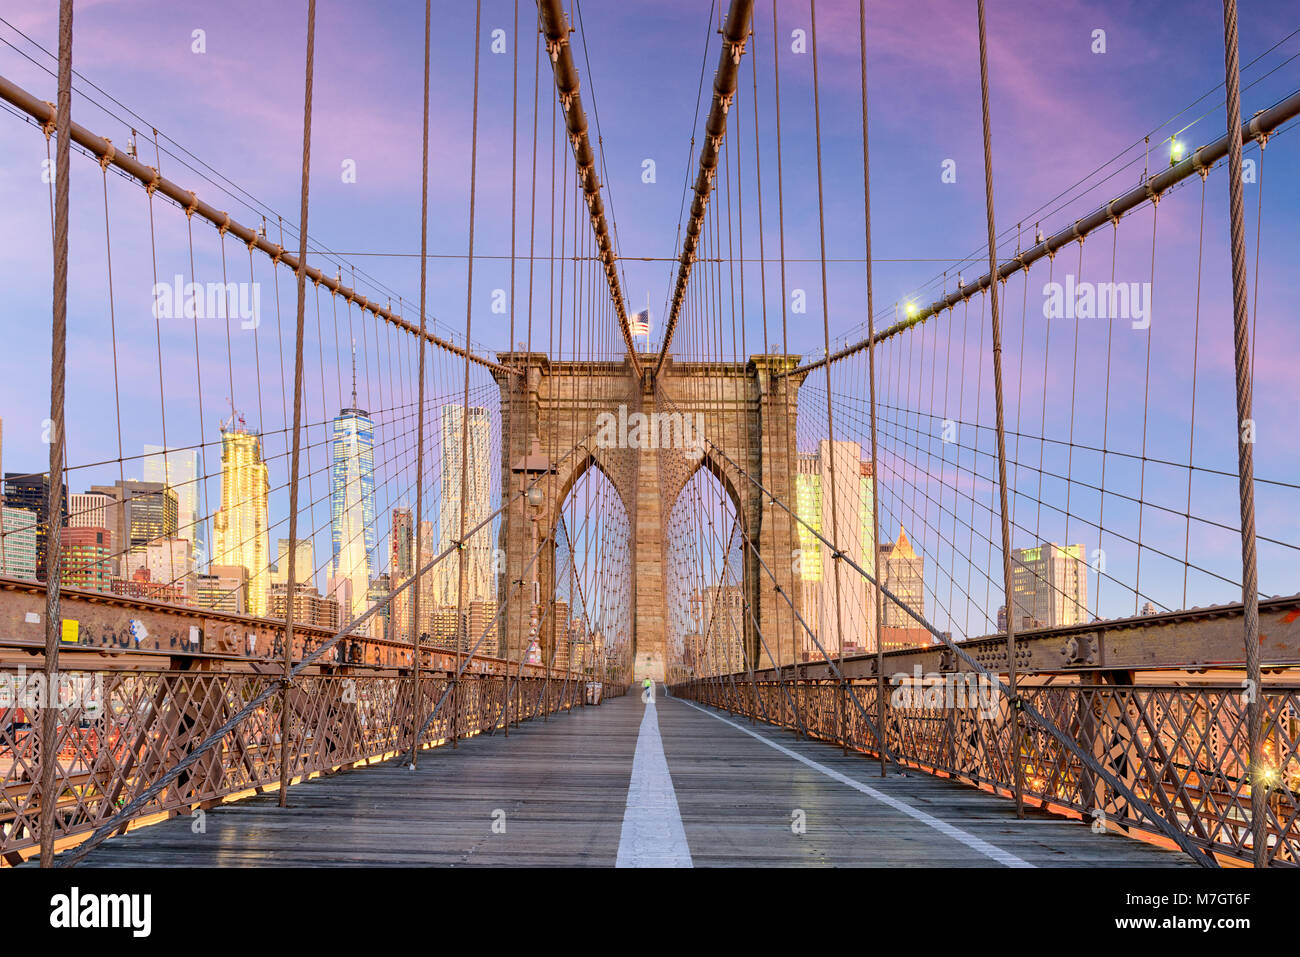 New York, New York on the Brooklyn Bridge Promenade facing Manhattan's skyline at dawn. - Stock Image